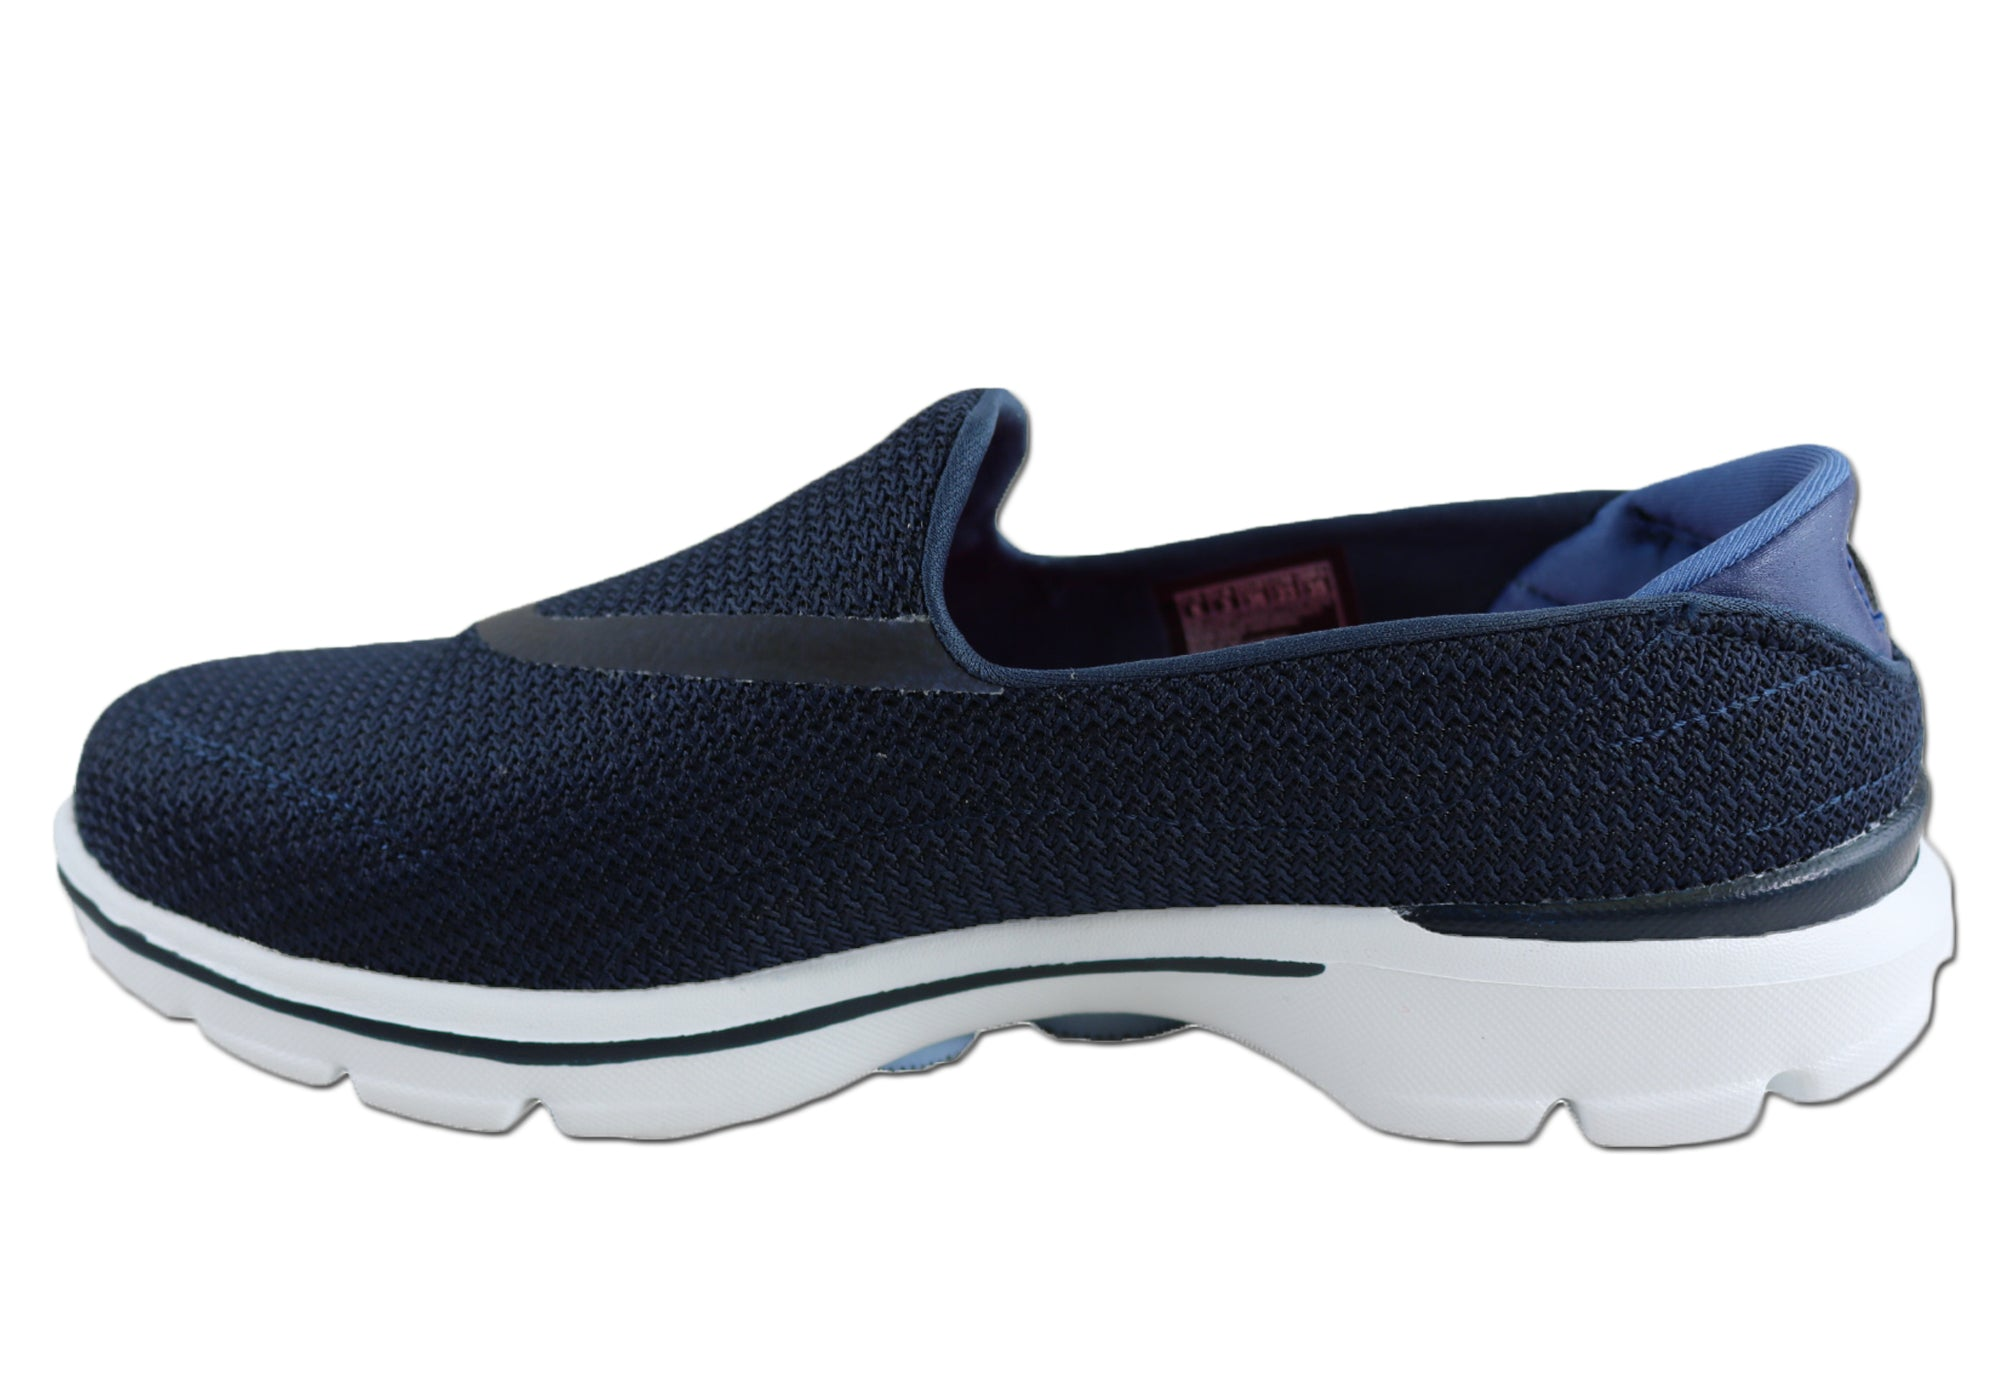 96528c20ee6a9 Skechers Go Walk 3 Womens Navy Lightweight Cushioned Comfort Slip On Shoes